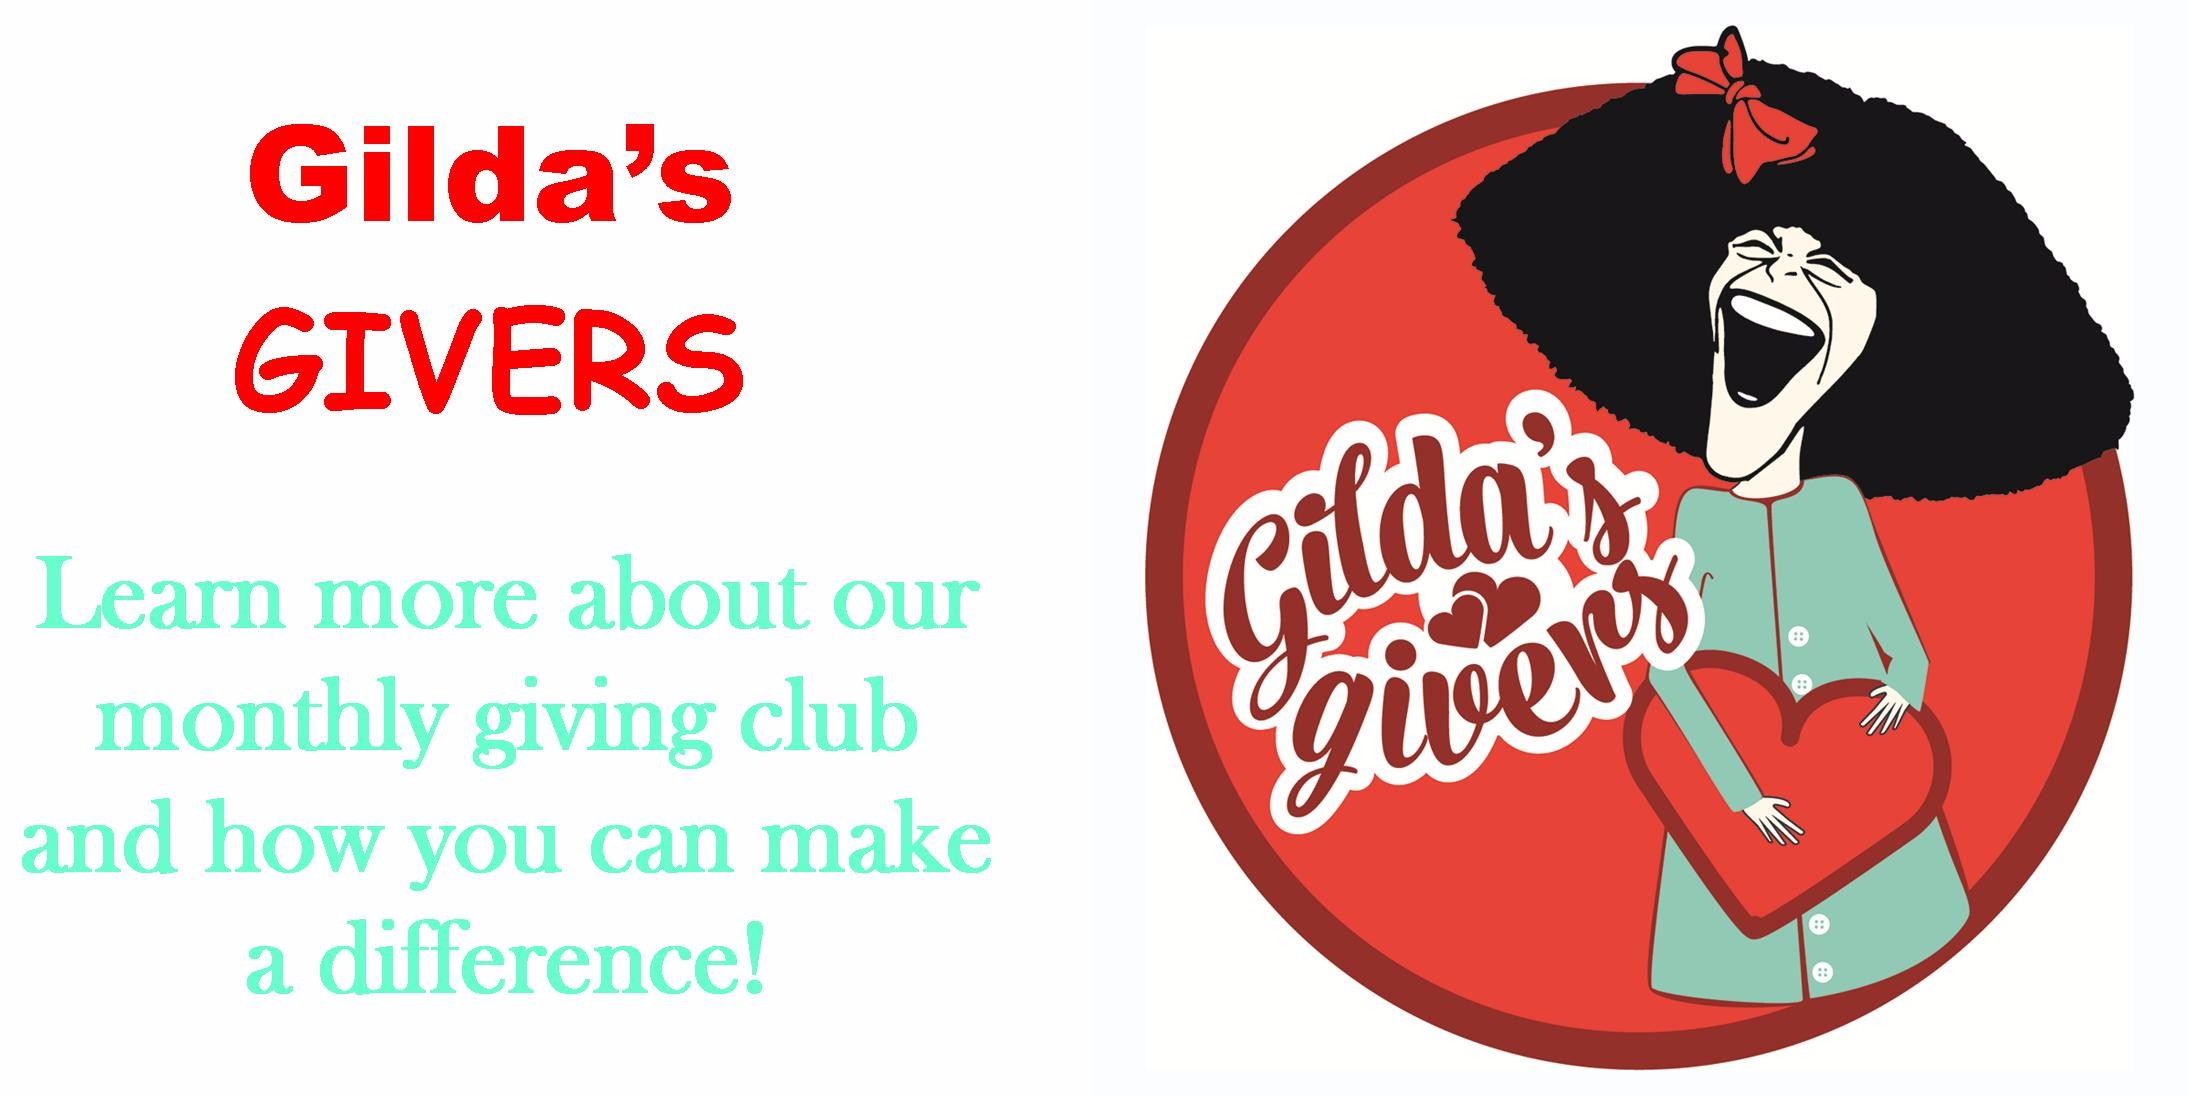 gildas-givers